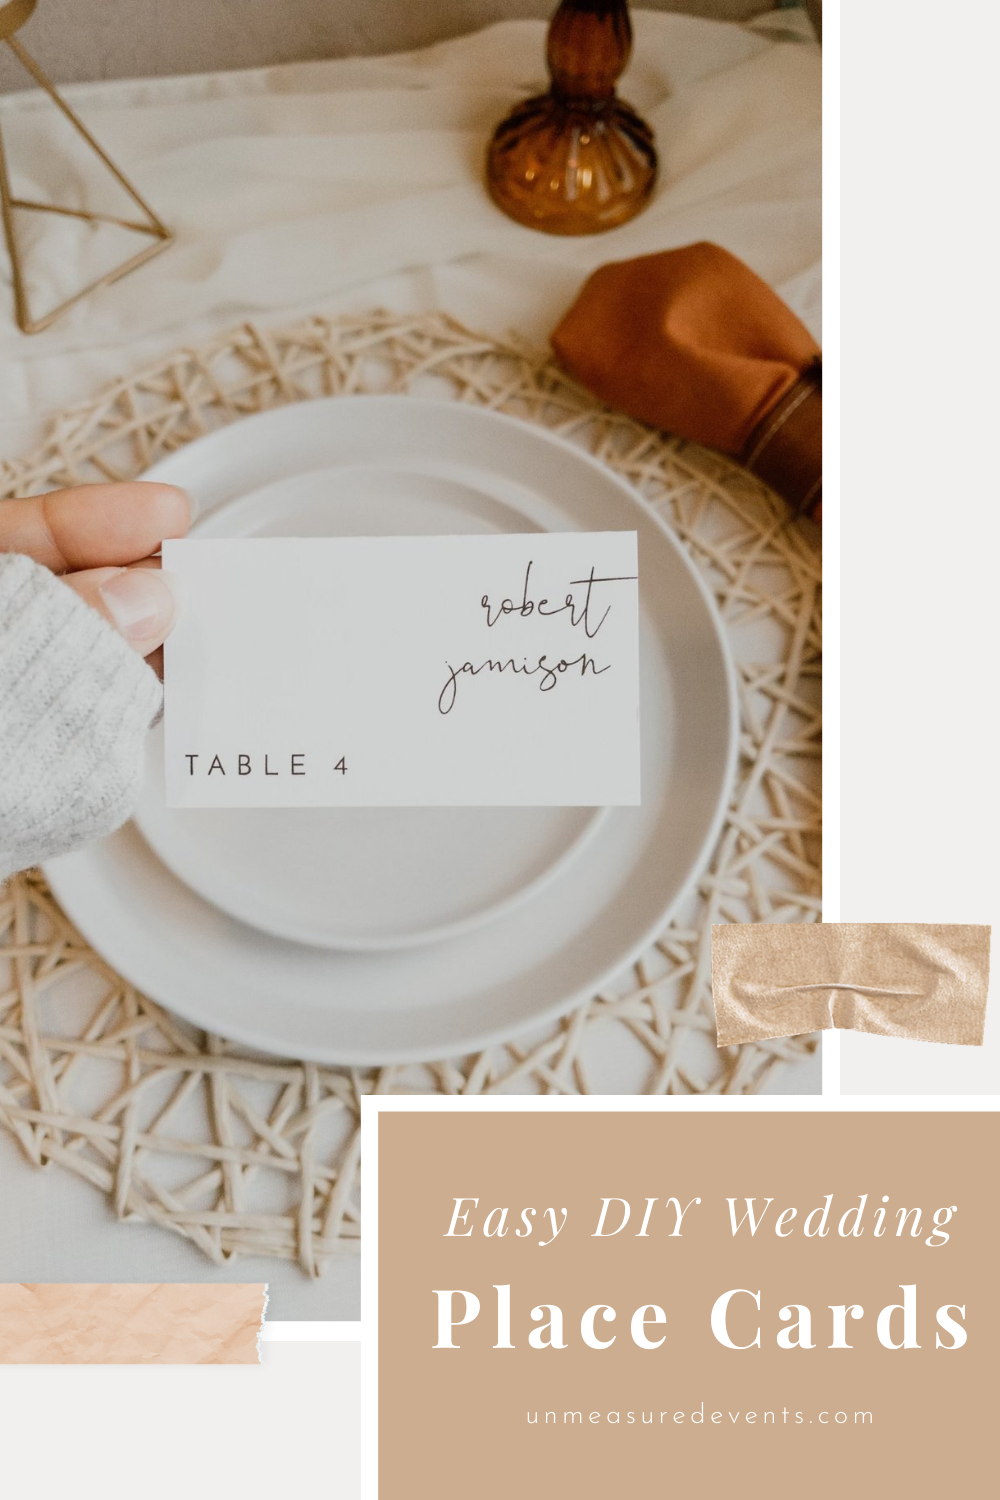 Easy DIY wedding place cards for the budge bride by Unmeasured Events